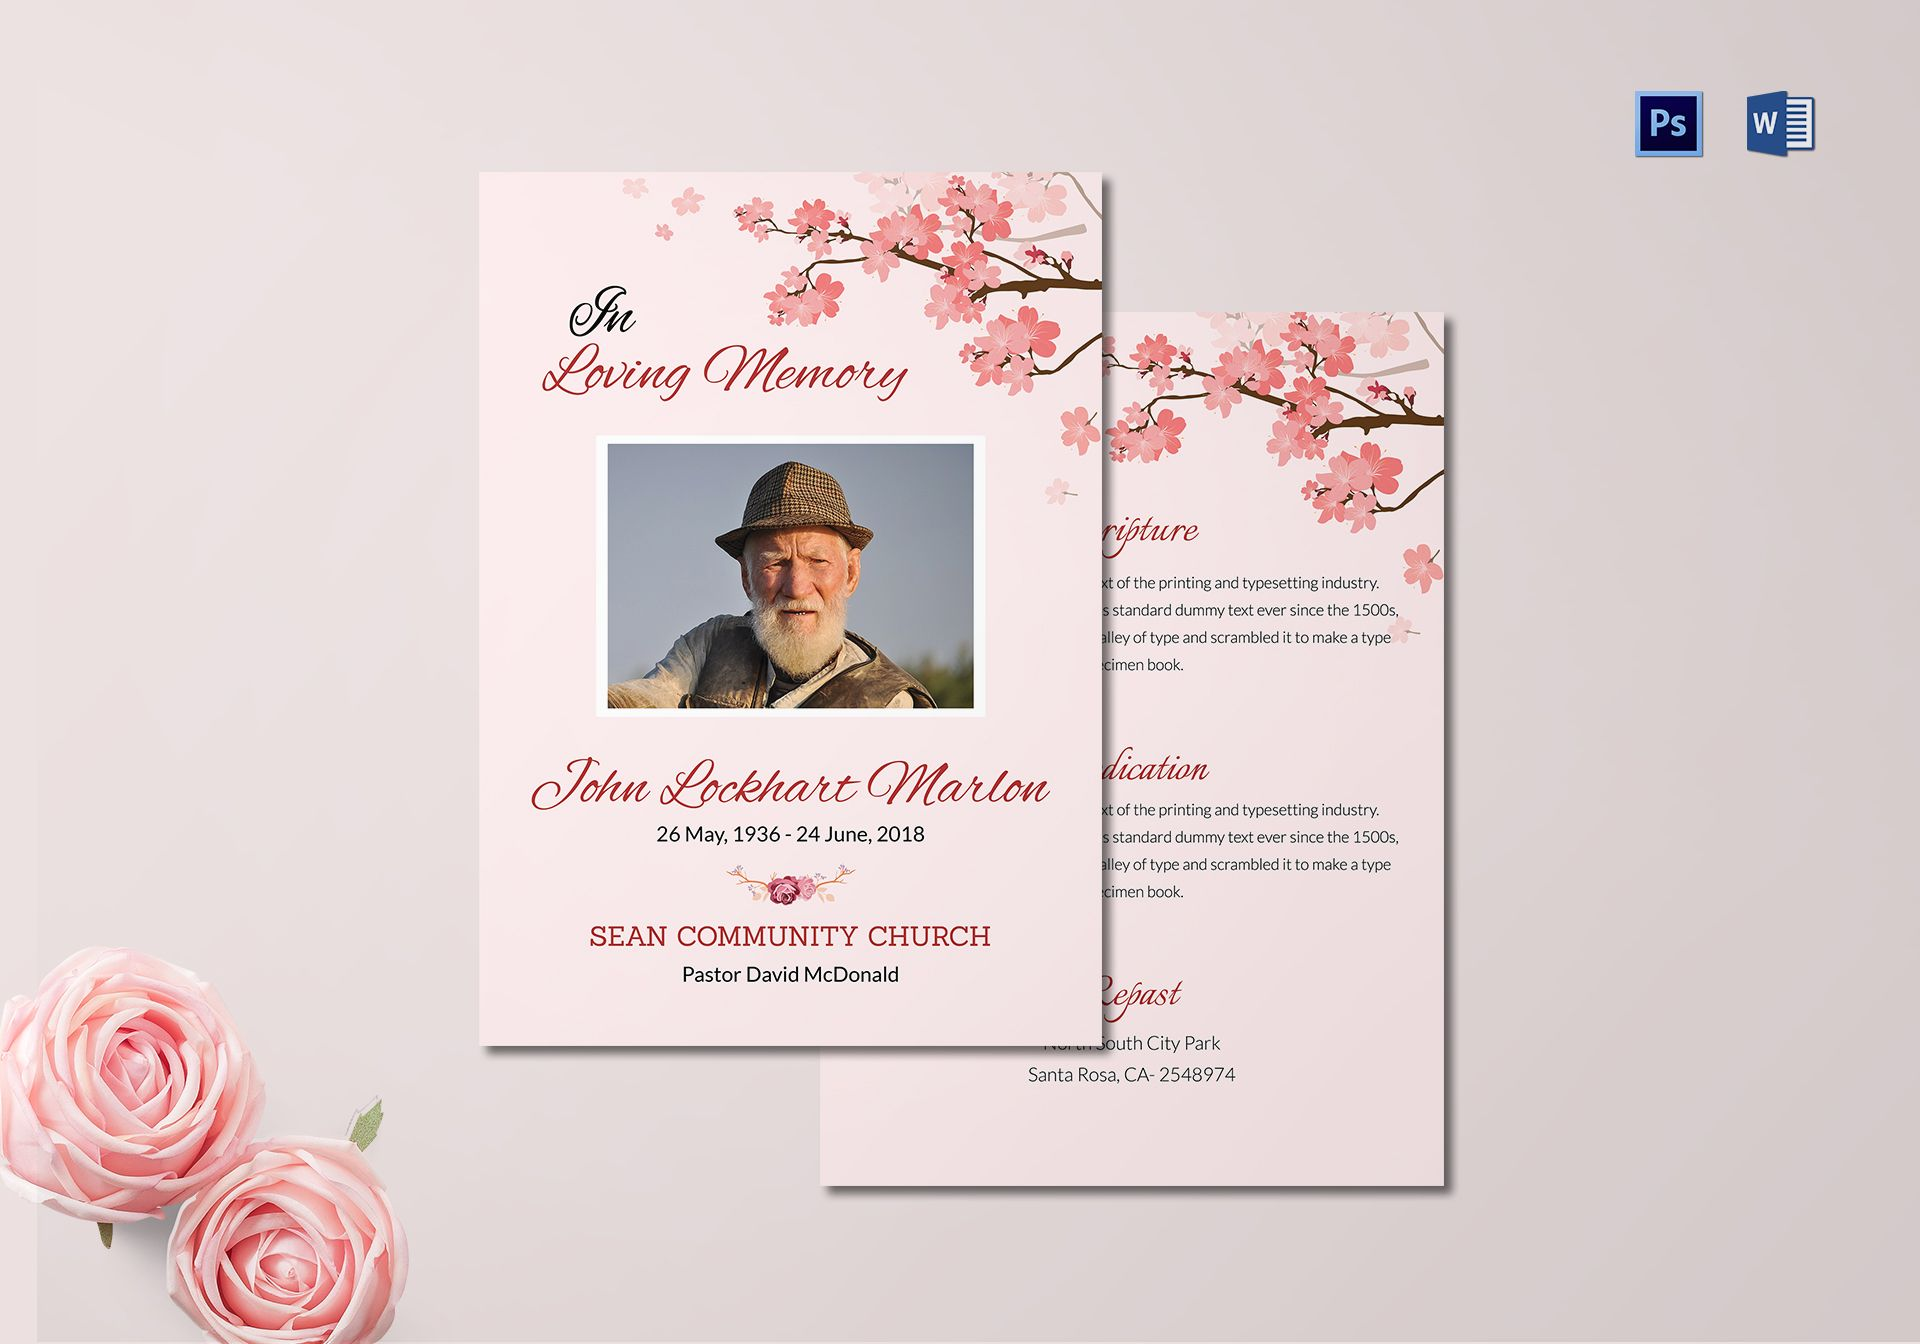 Church Funeral Resolution Template in Adobe Photoshop, Microsoft Word